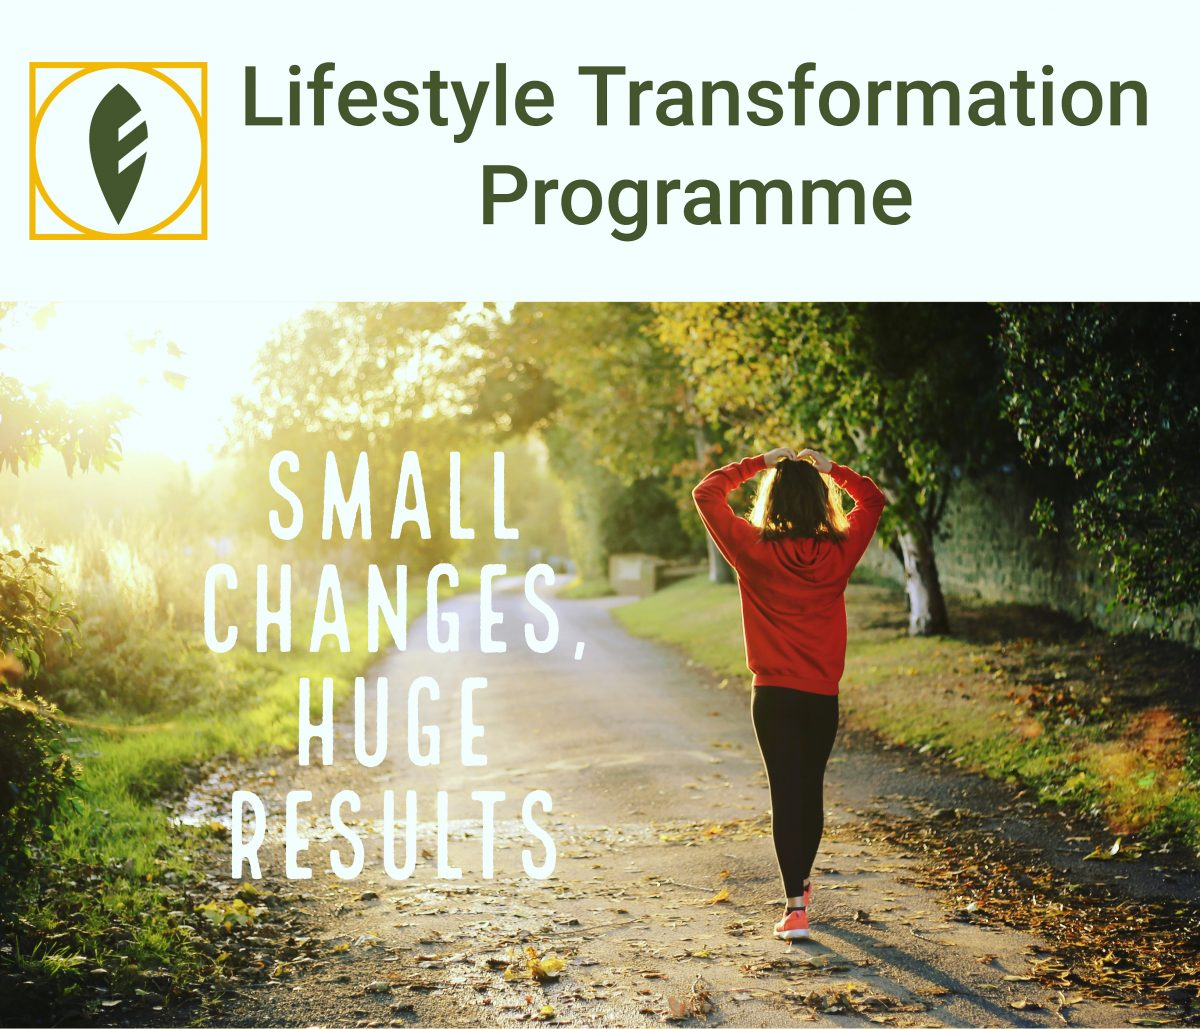 Lifestyle Transformation Programme